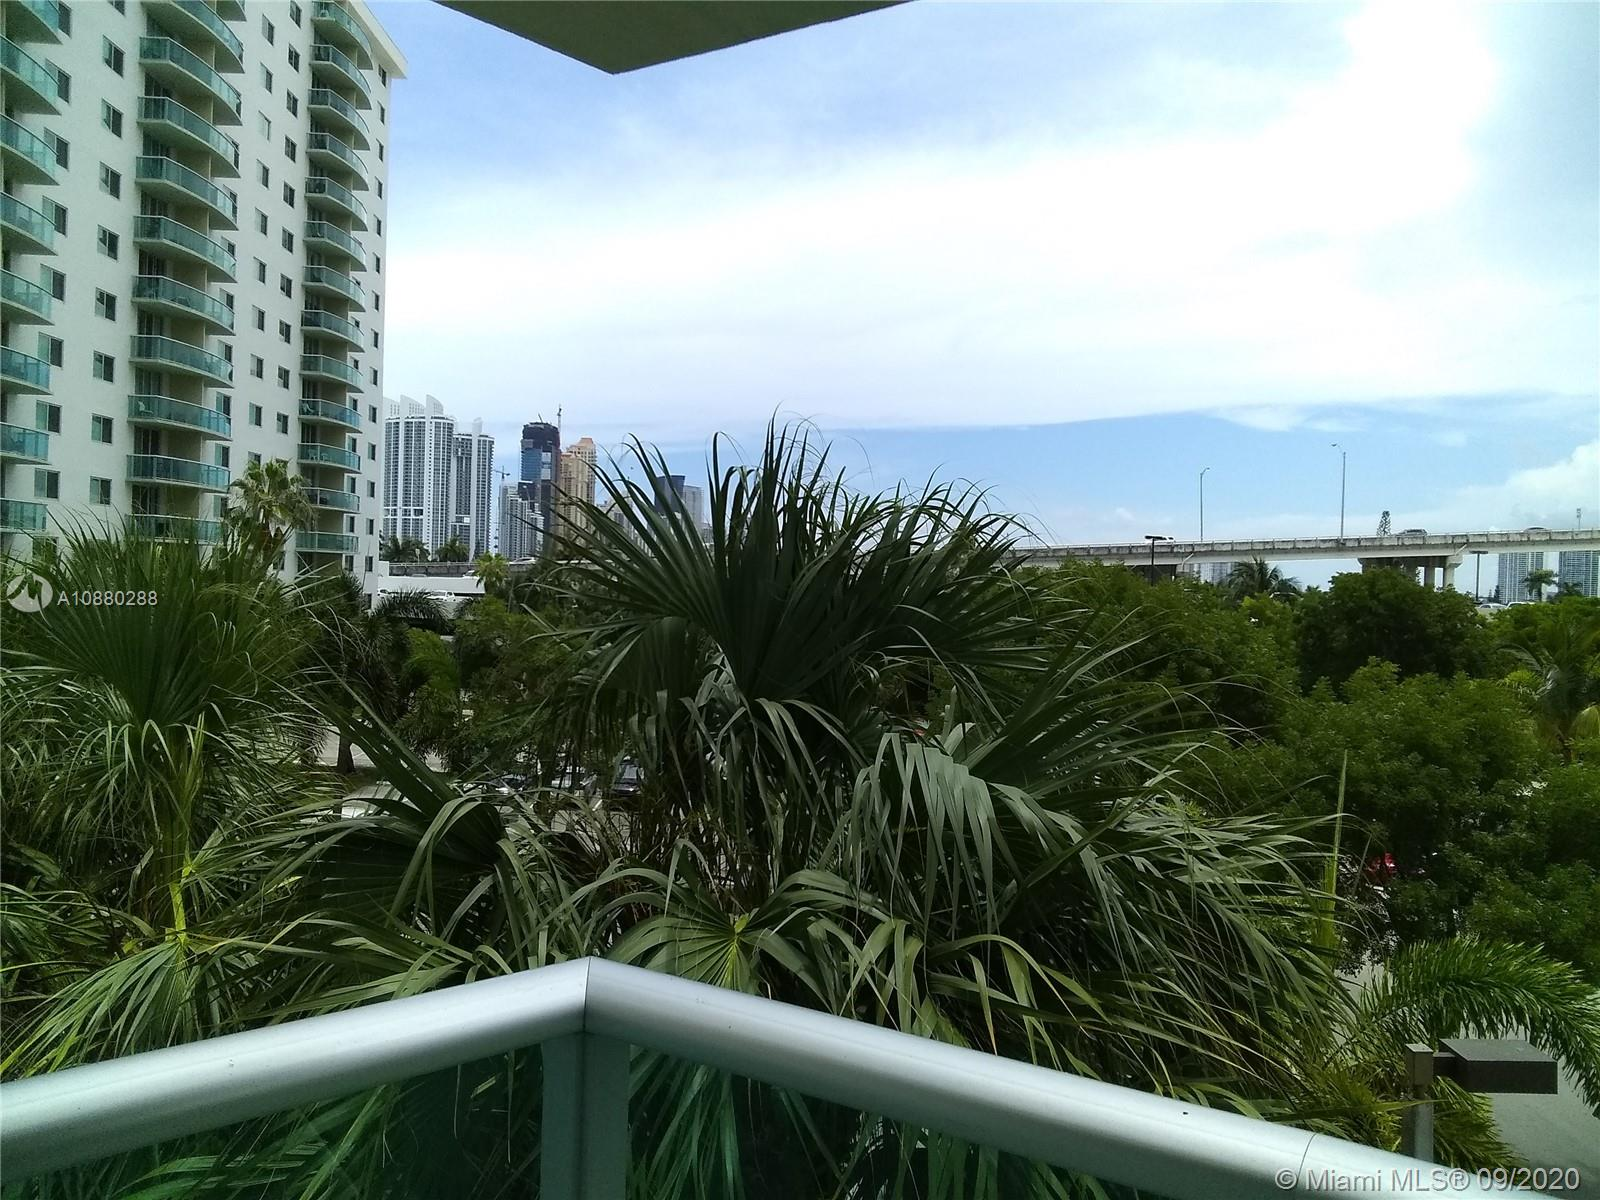 Ocean View B #325 - 19380 Collins Ave #325, Sunny Isles Beach, FL 33160